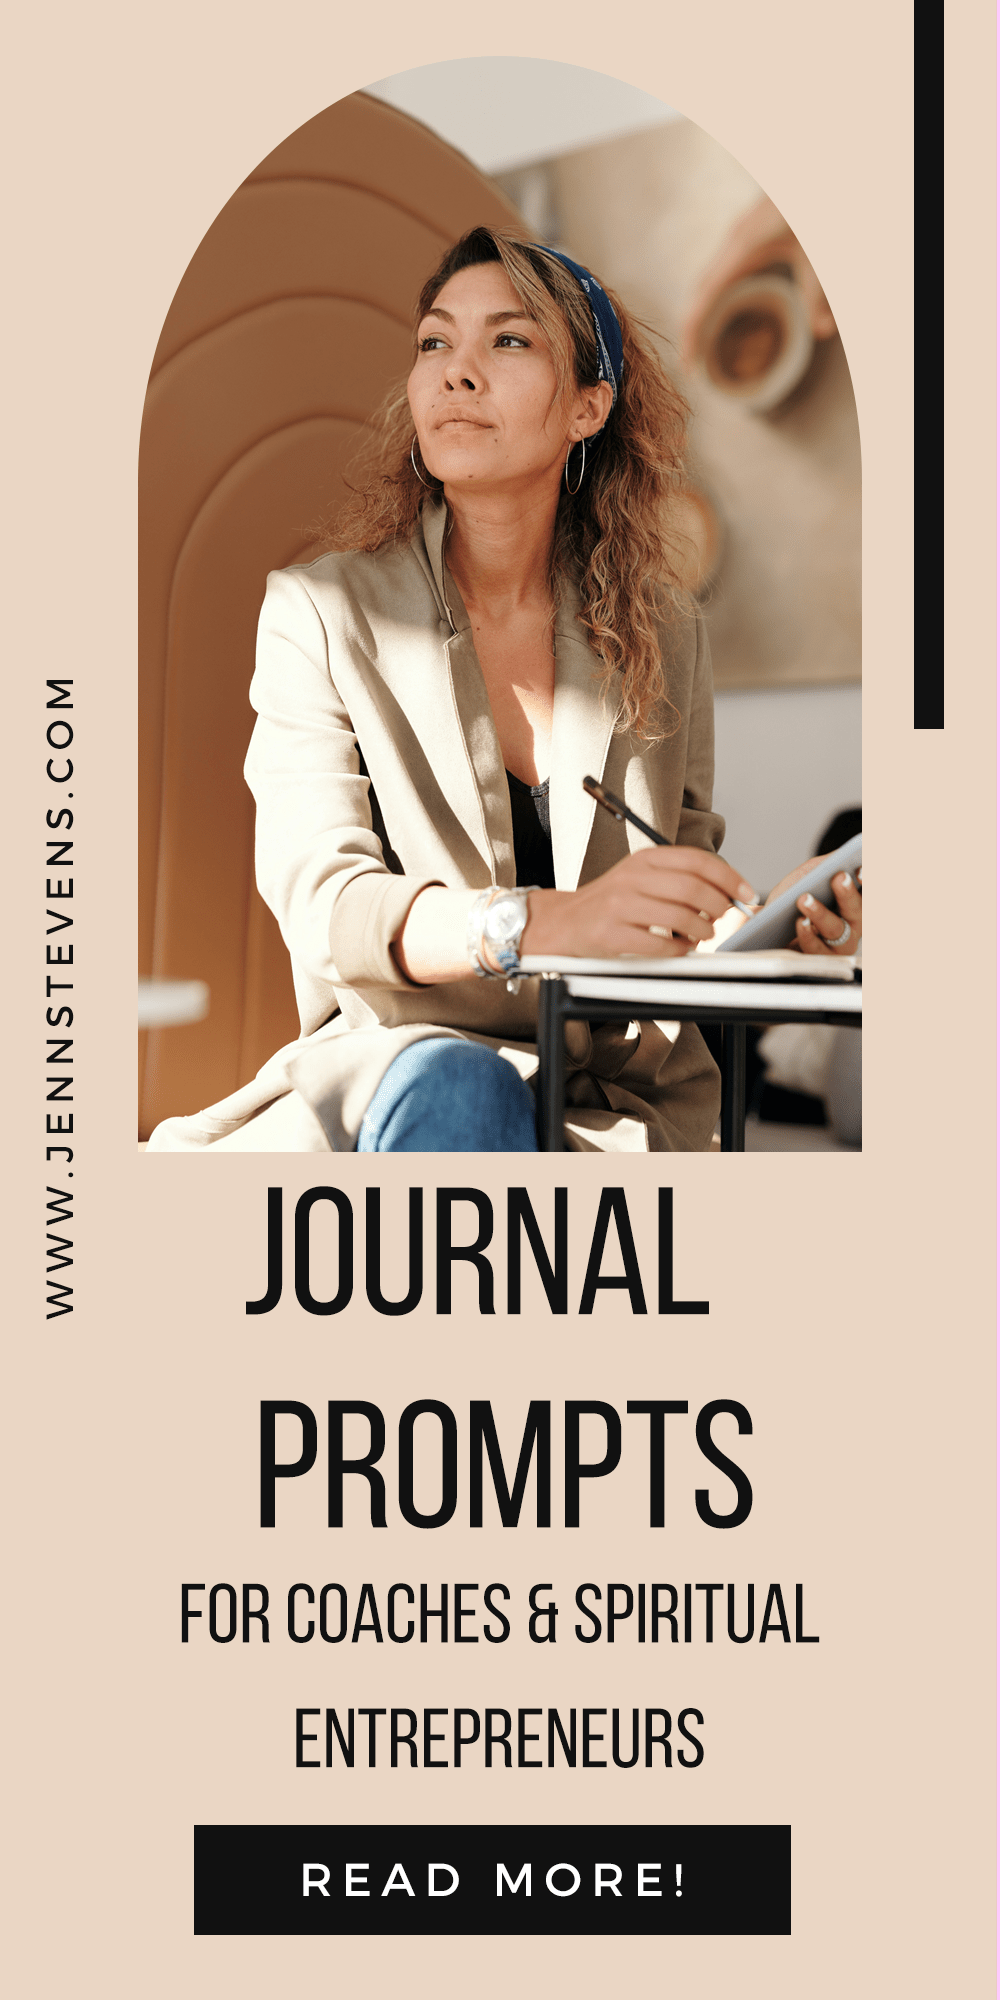 woman on laptop with text 25 Journal Prompts For Coaches & Spiritual Entrepreneurs